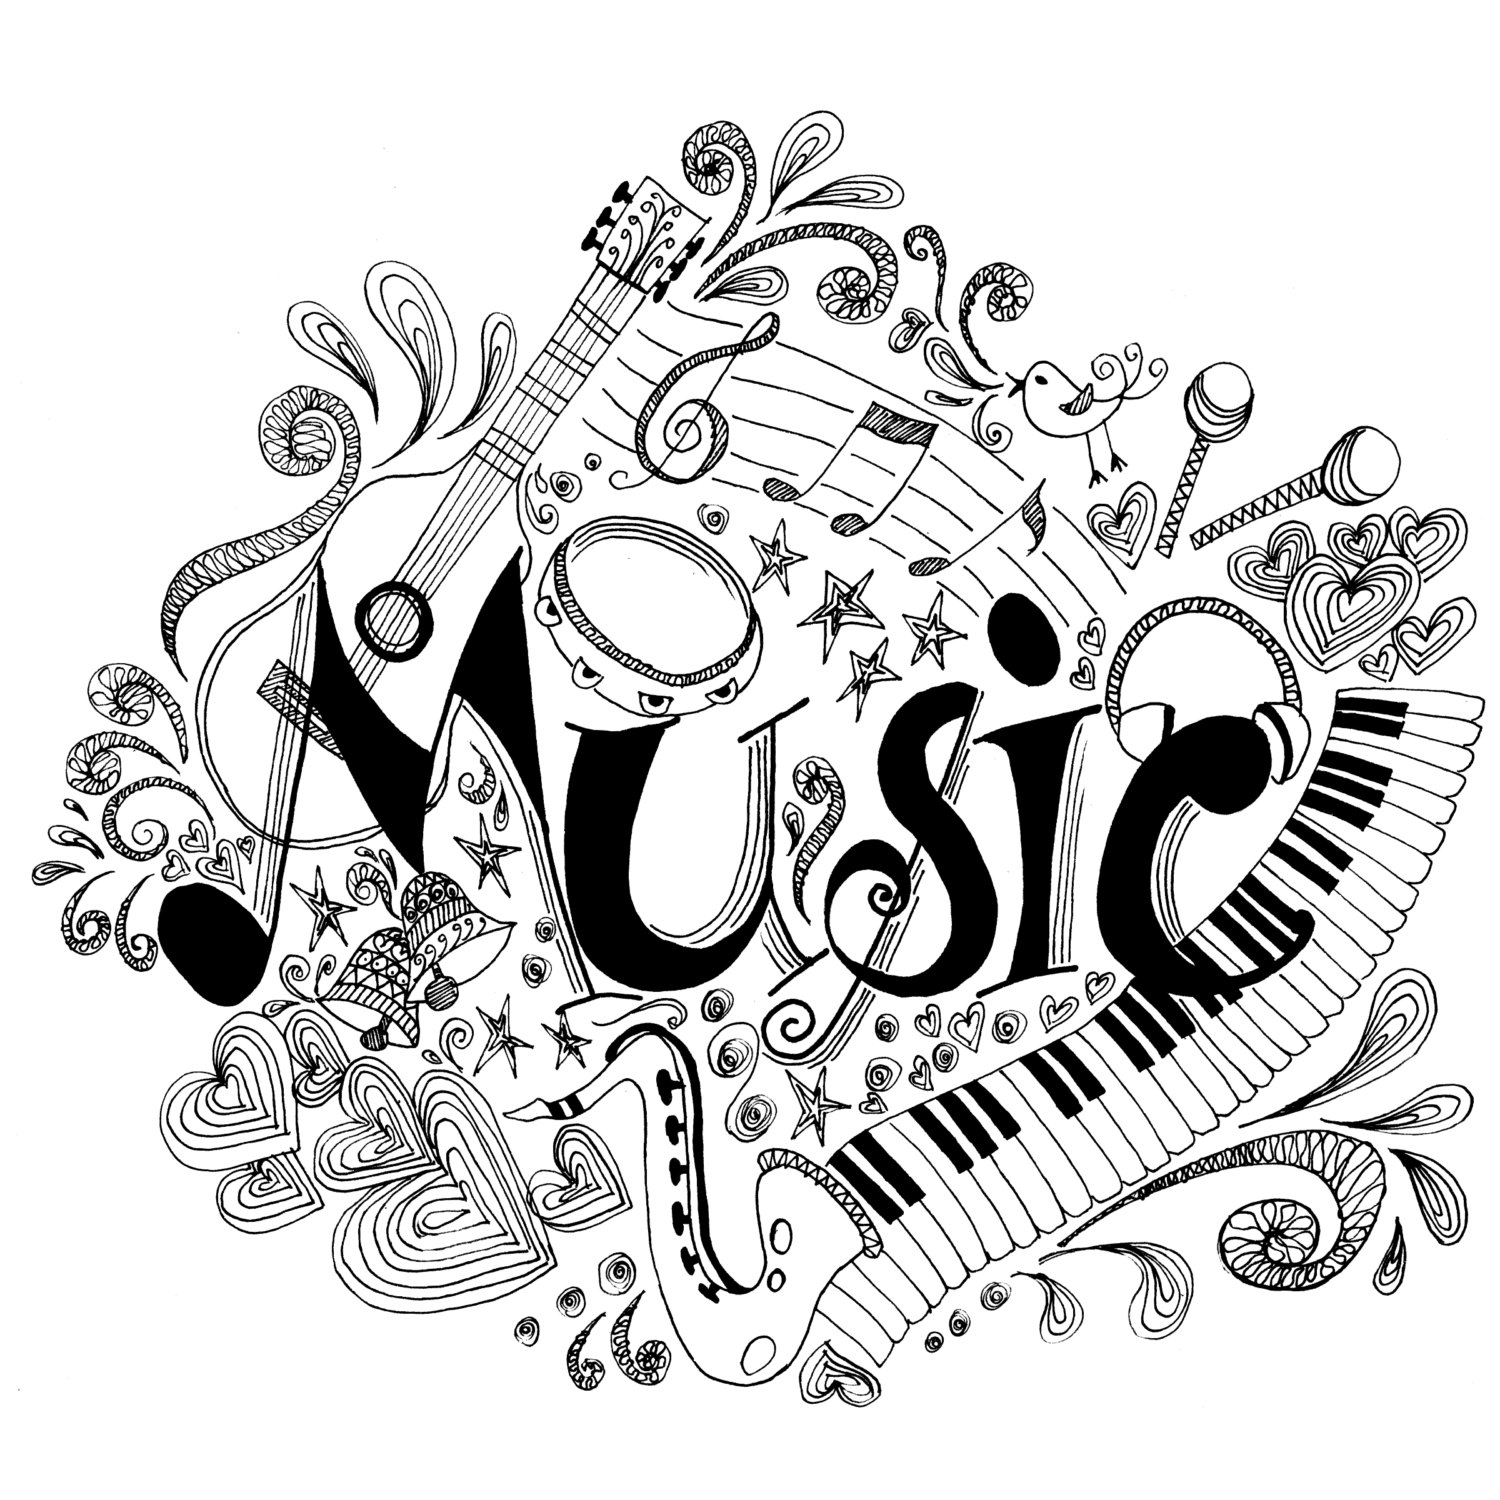 coloring page music free printable music note coloring pages for kids coloring page music